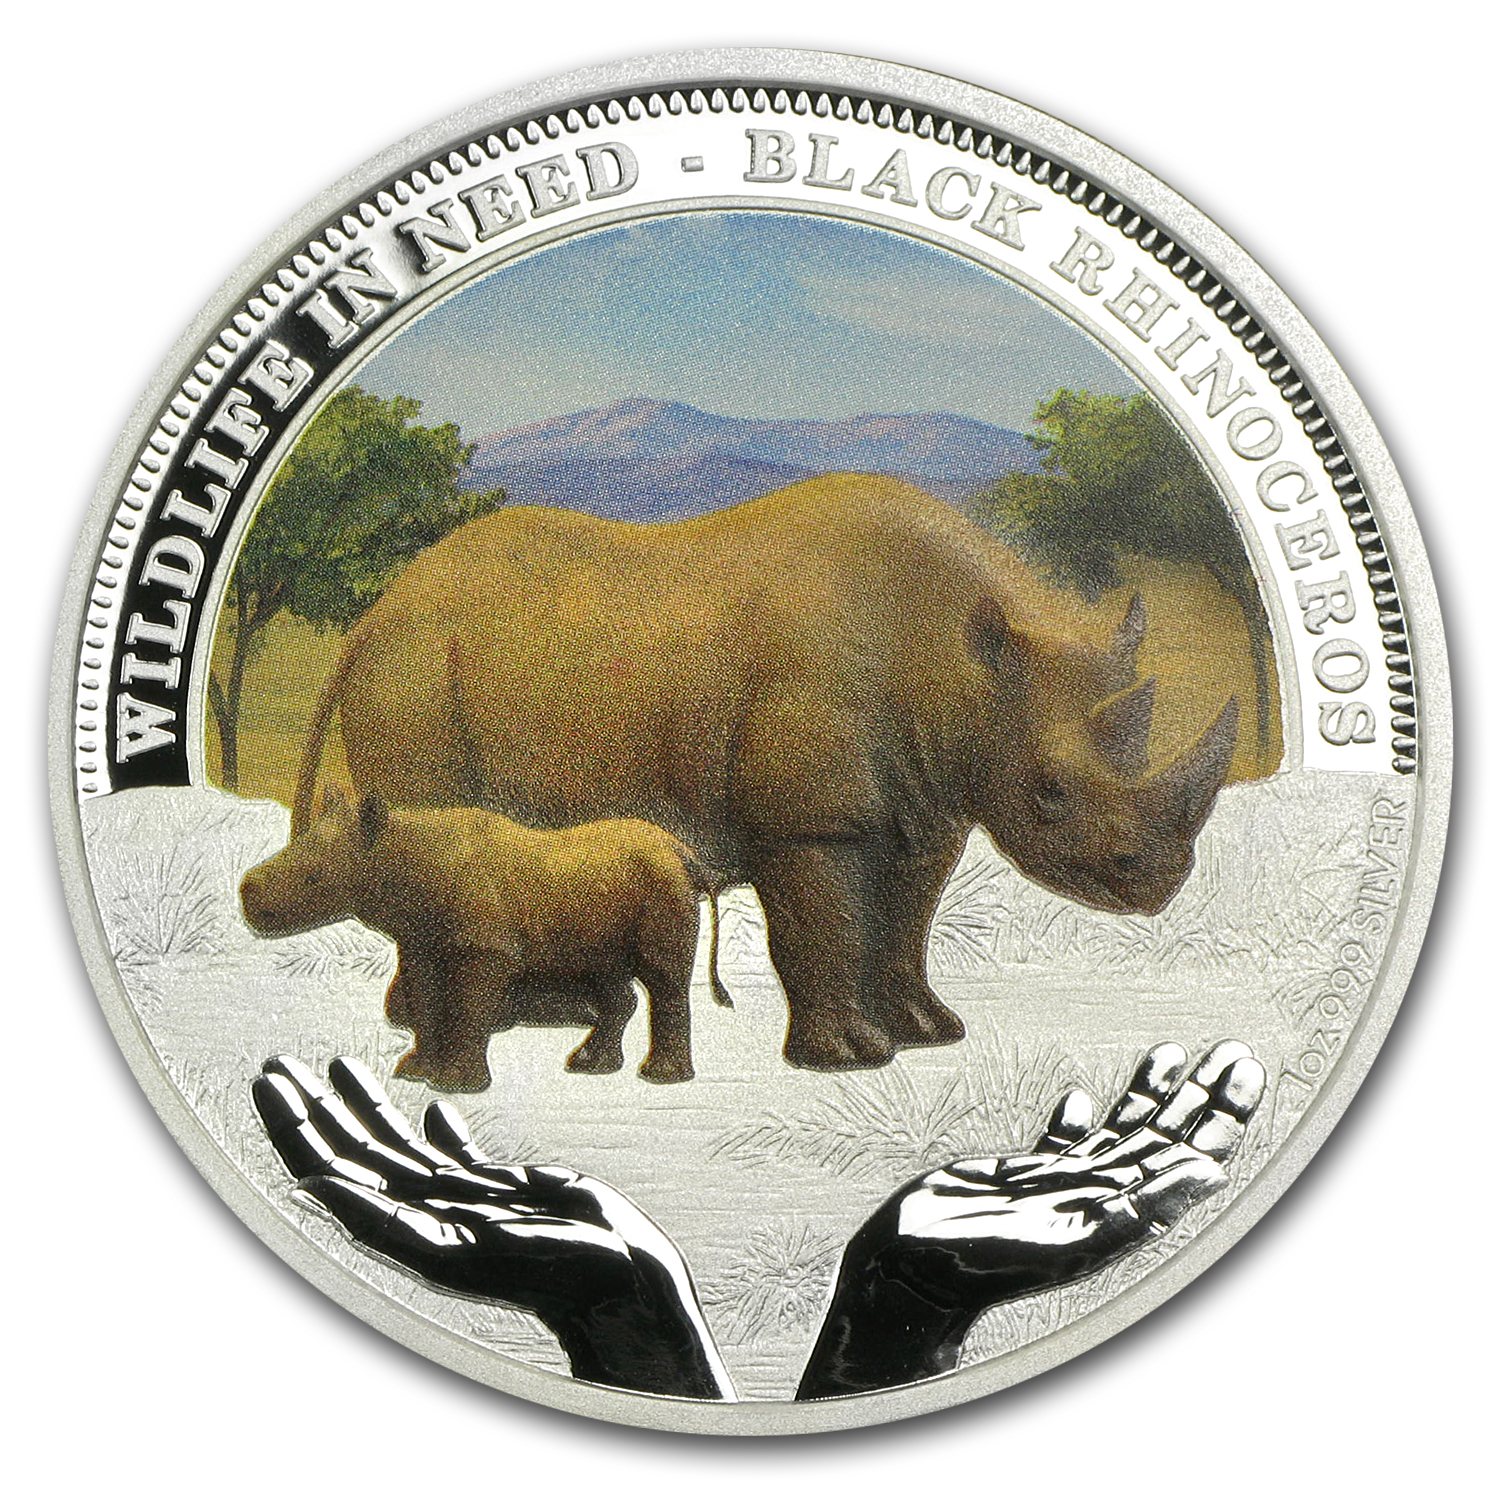 2012 1 oz Proof Silver Black Rhinoceros - Wildlife in Need Series